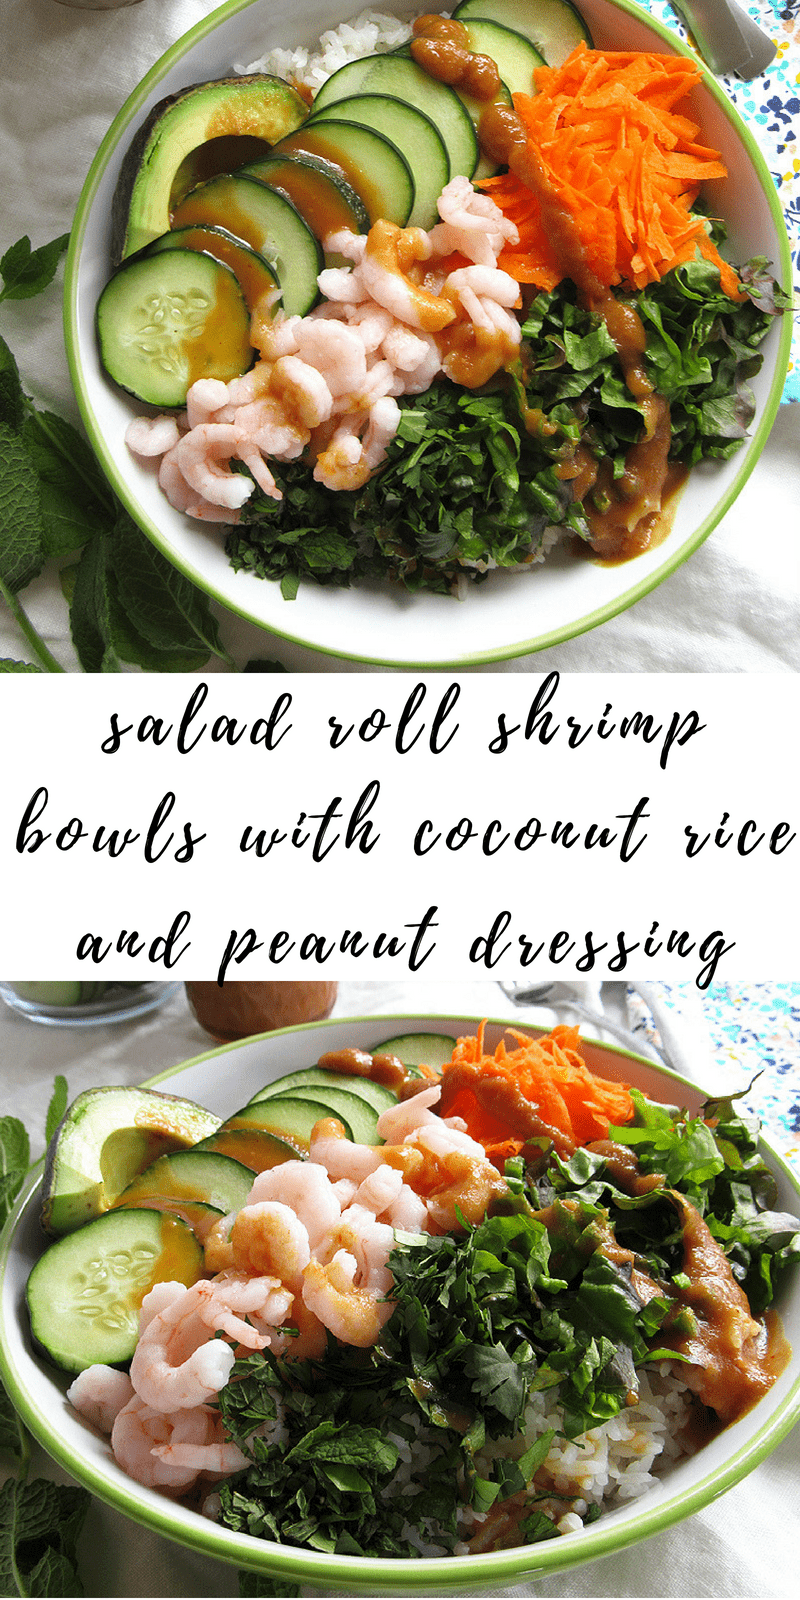 salad roll shrimp bowls with coconut rice and peanut dressing